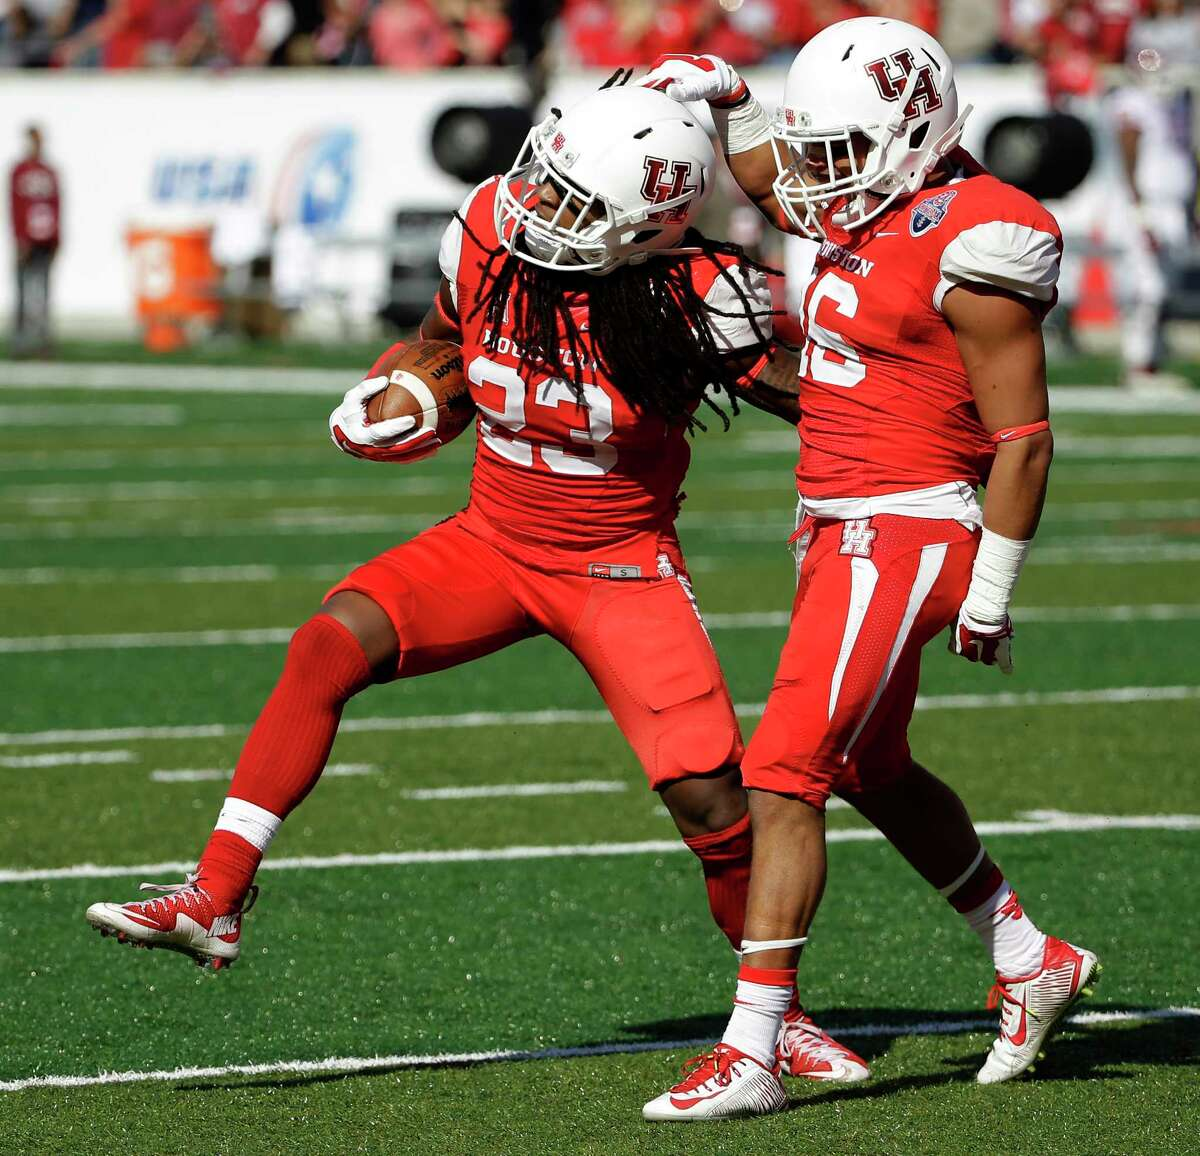 Houston safety Trevon Stewart (23) celebrates with safety Adrian McDonald after recovering a fumble on Saturday.